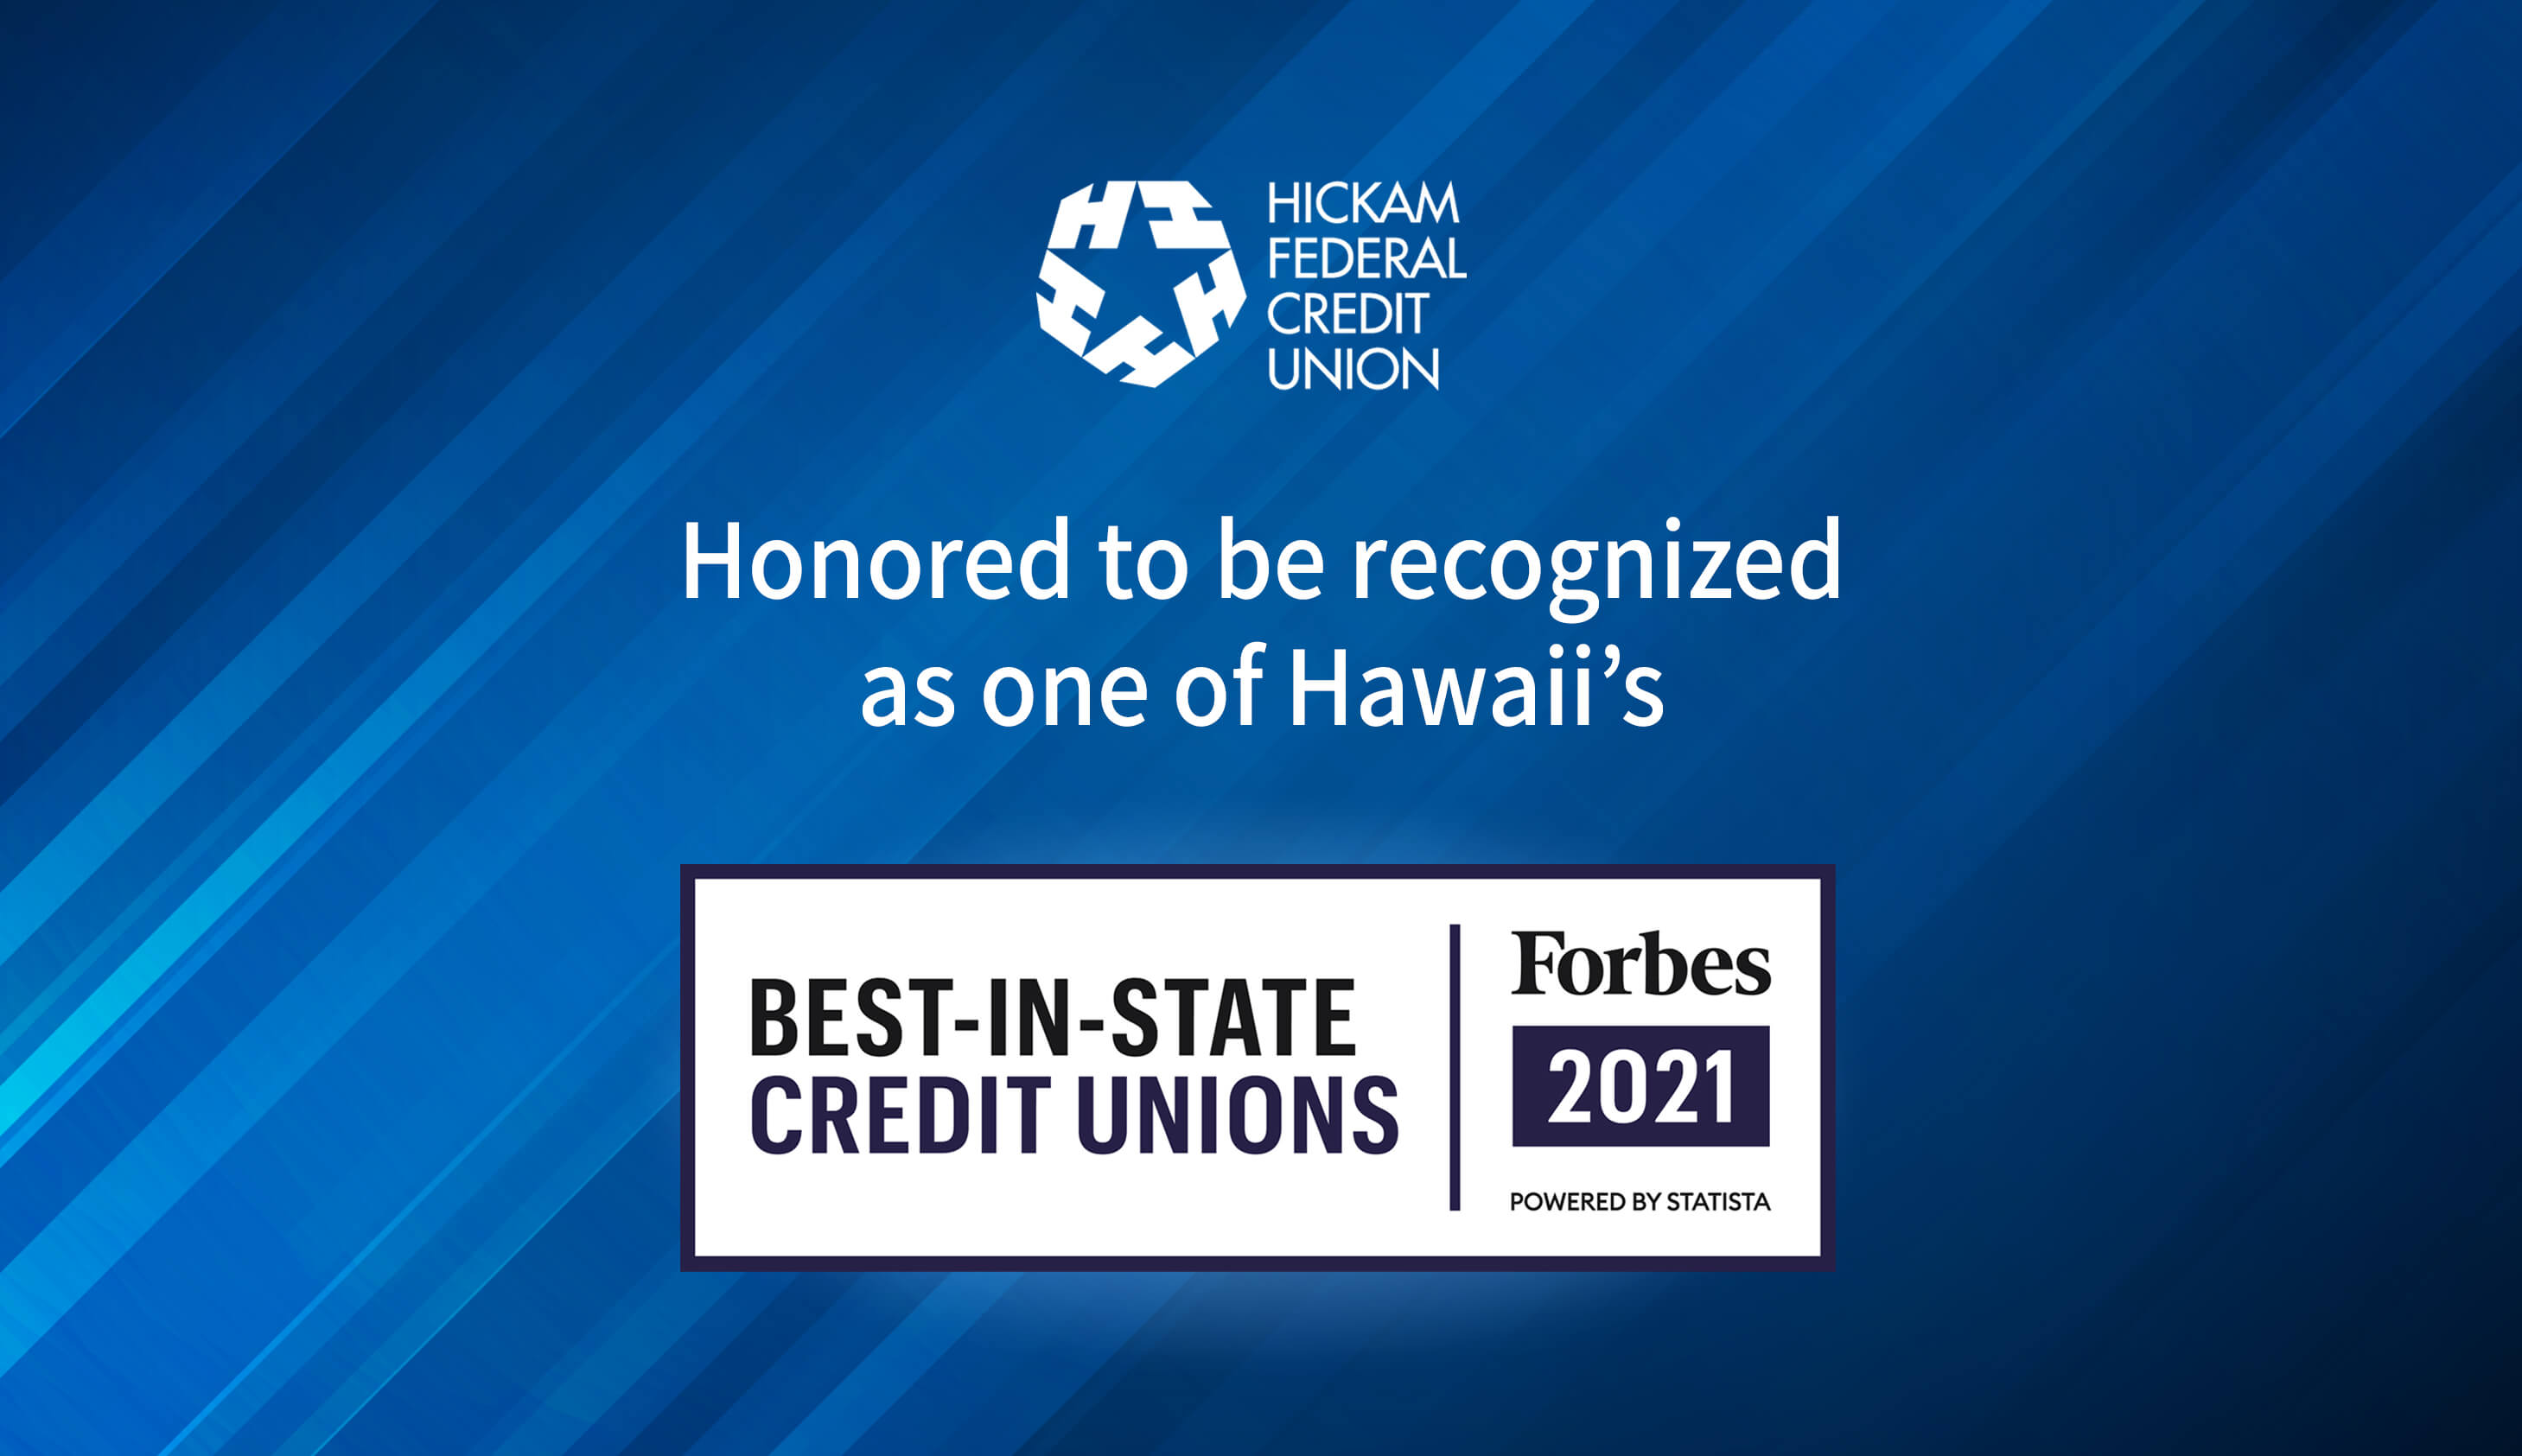 Hickam Federal Credit Union honored to be recognized by Forbes as one of Hawaii's best in state credit unions for 2021.